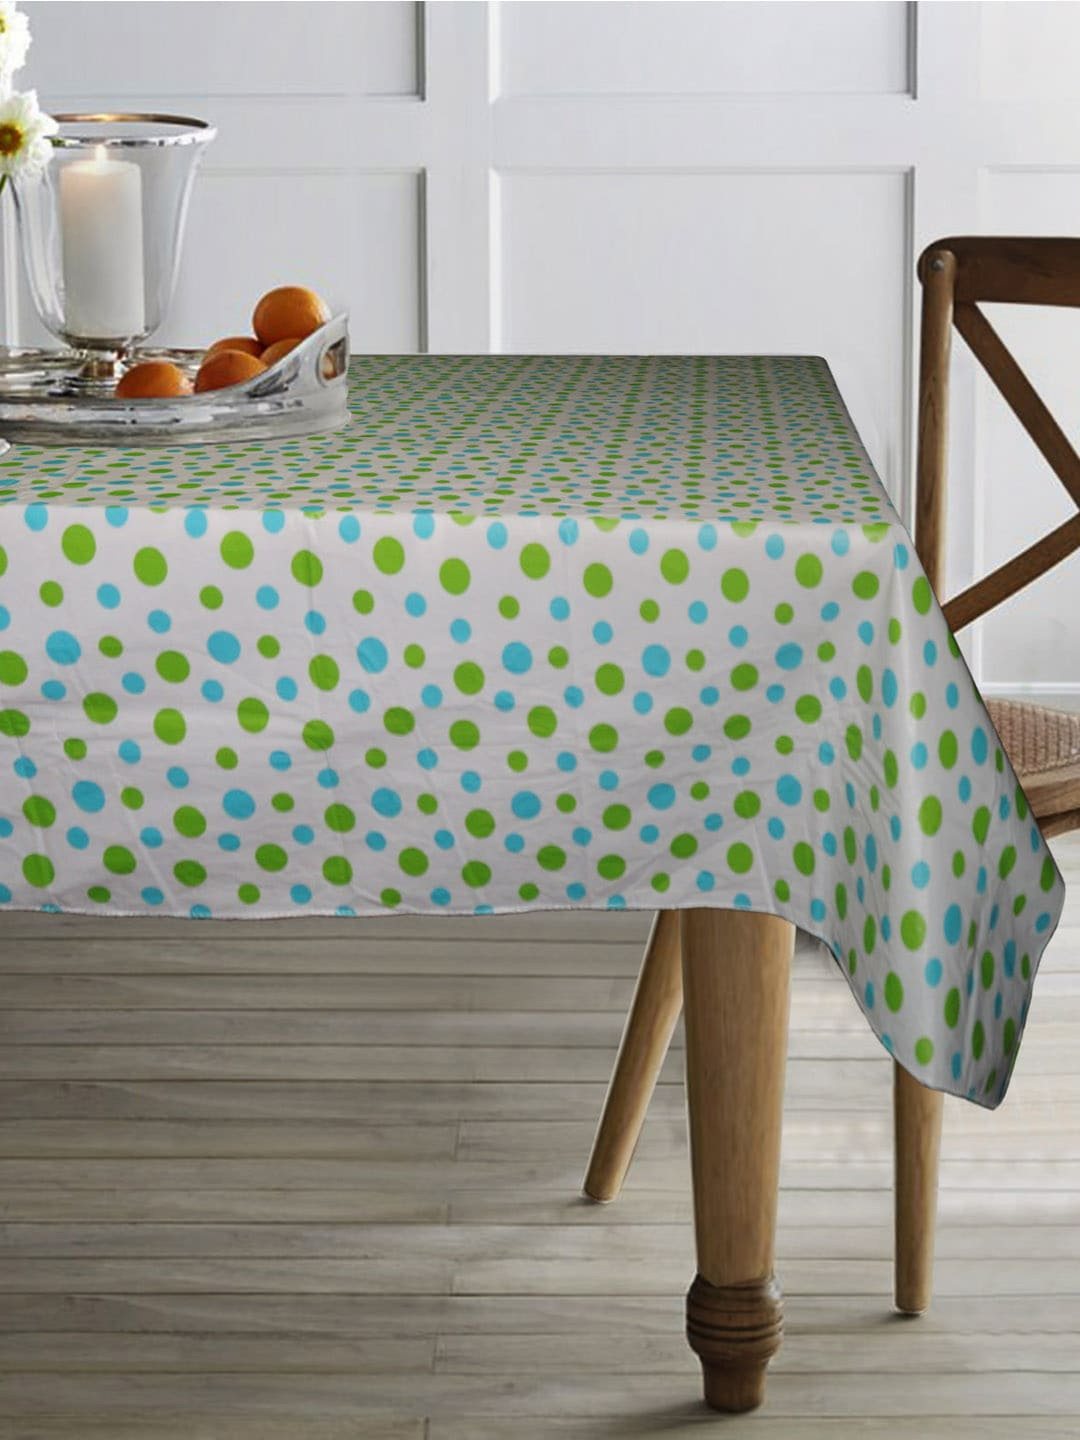 Lushomes Off White   Green Polka Dots Printed Waterproof Table Cover